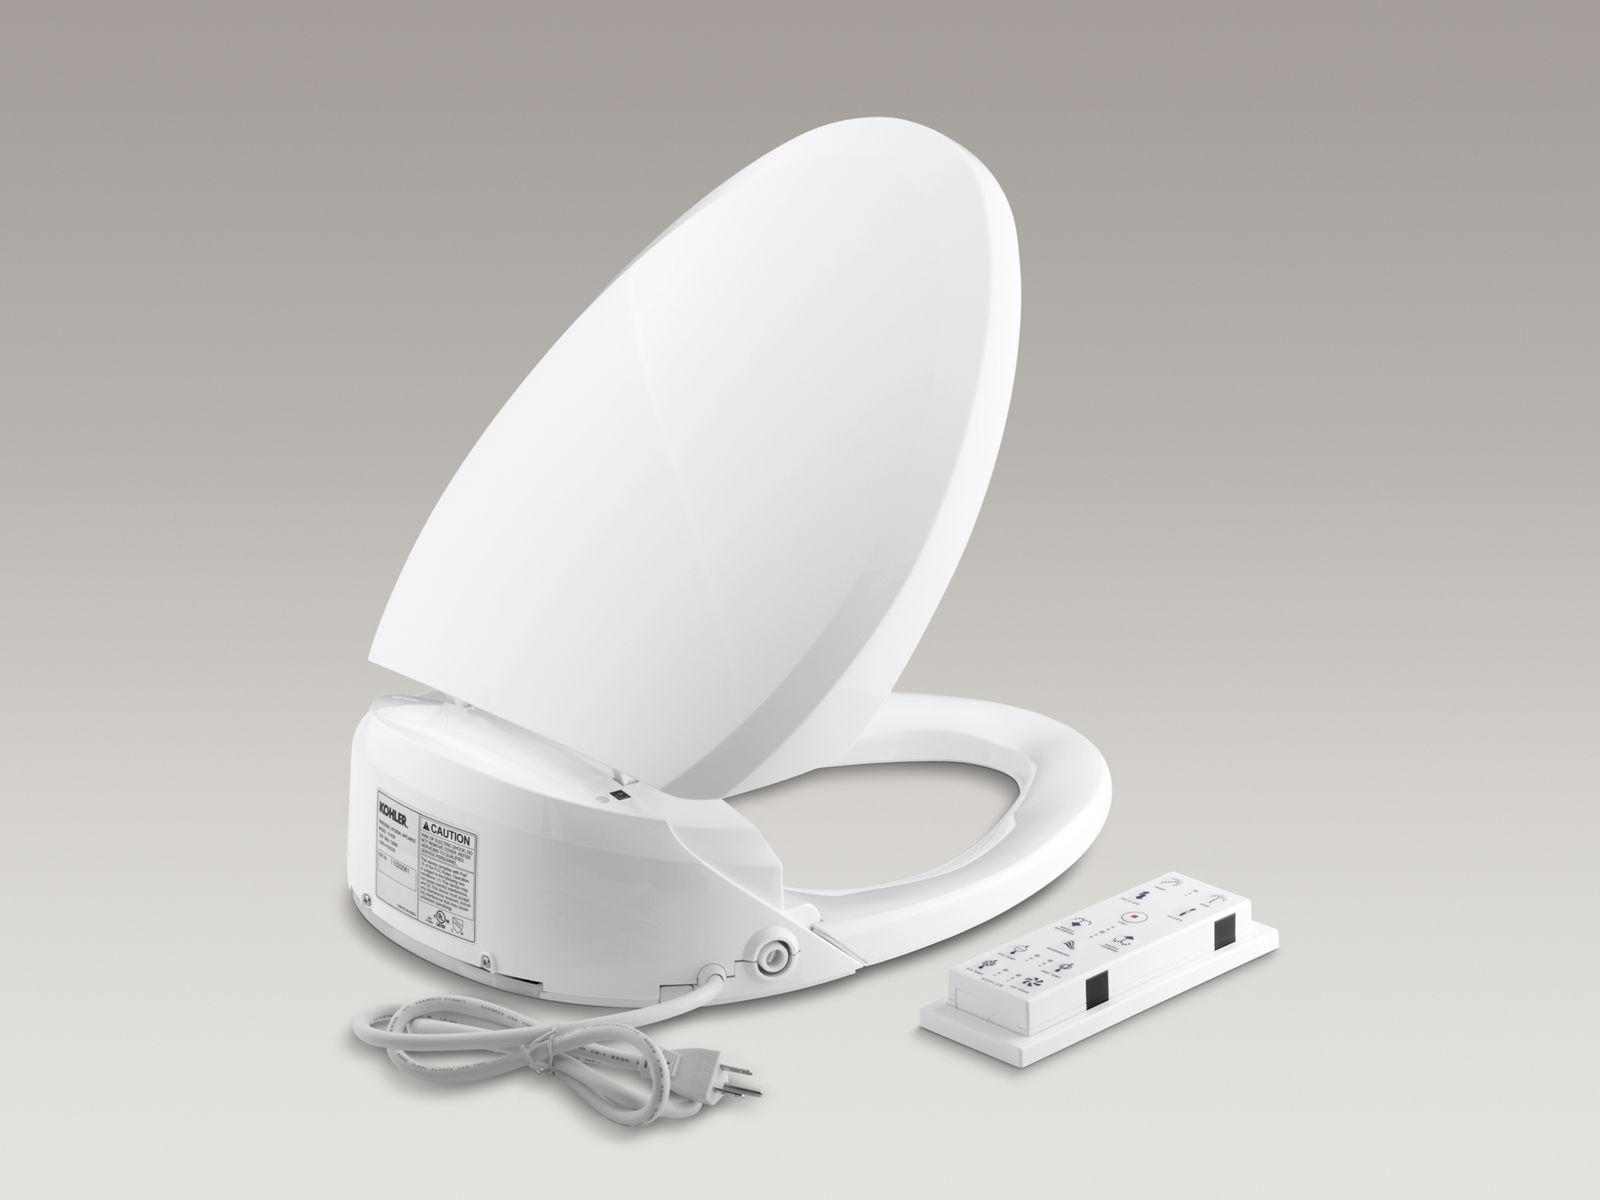 C3®-201 elongated closed-front toilet seat with bidet functionality, in-line heater and remote controls